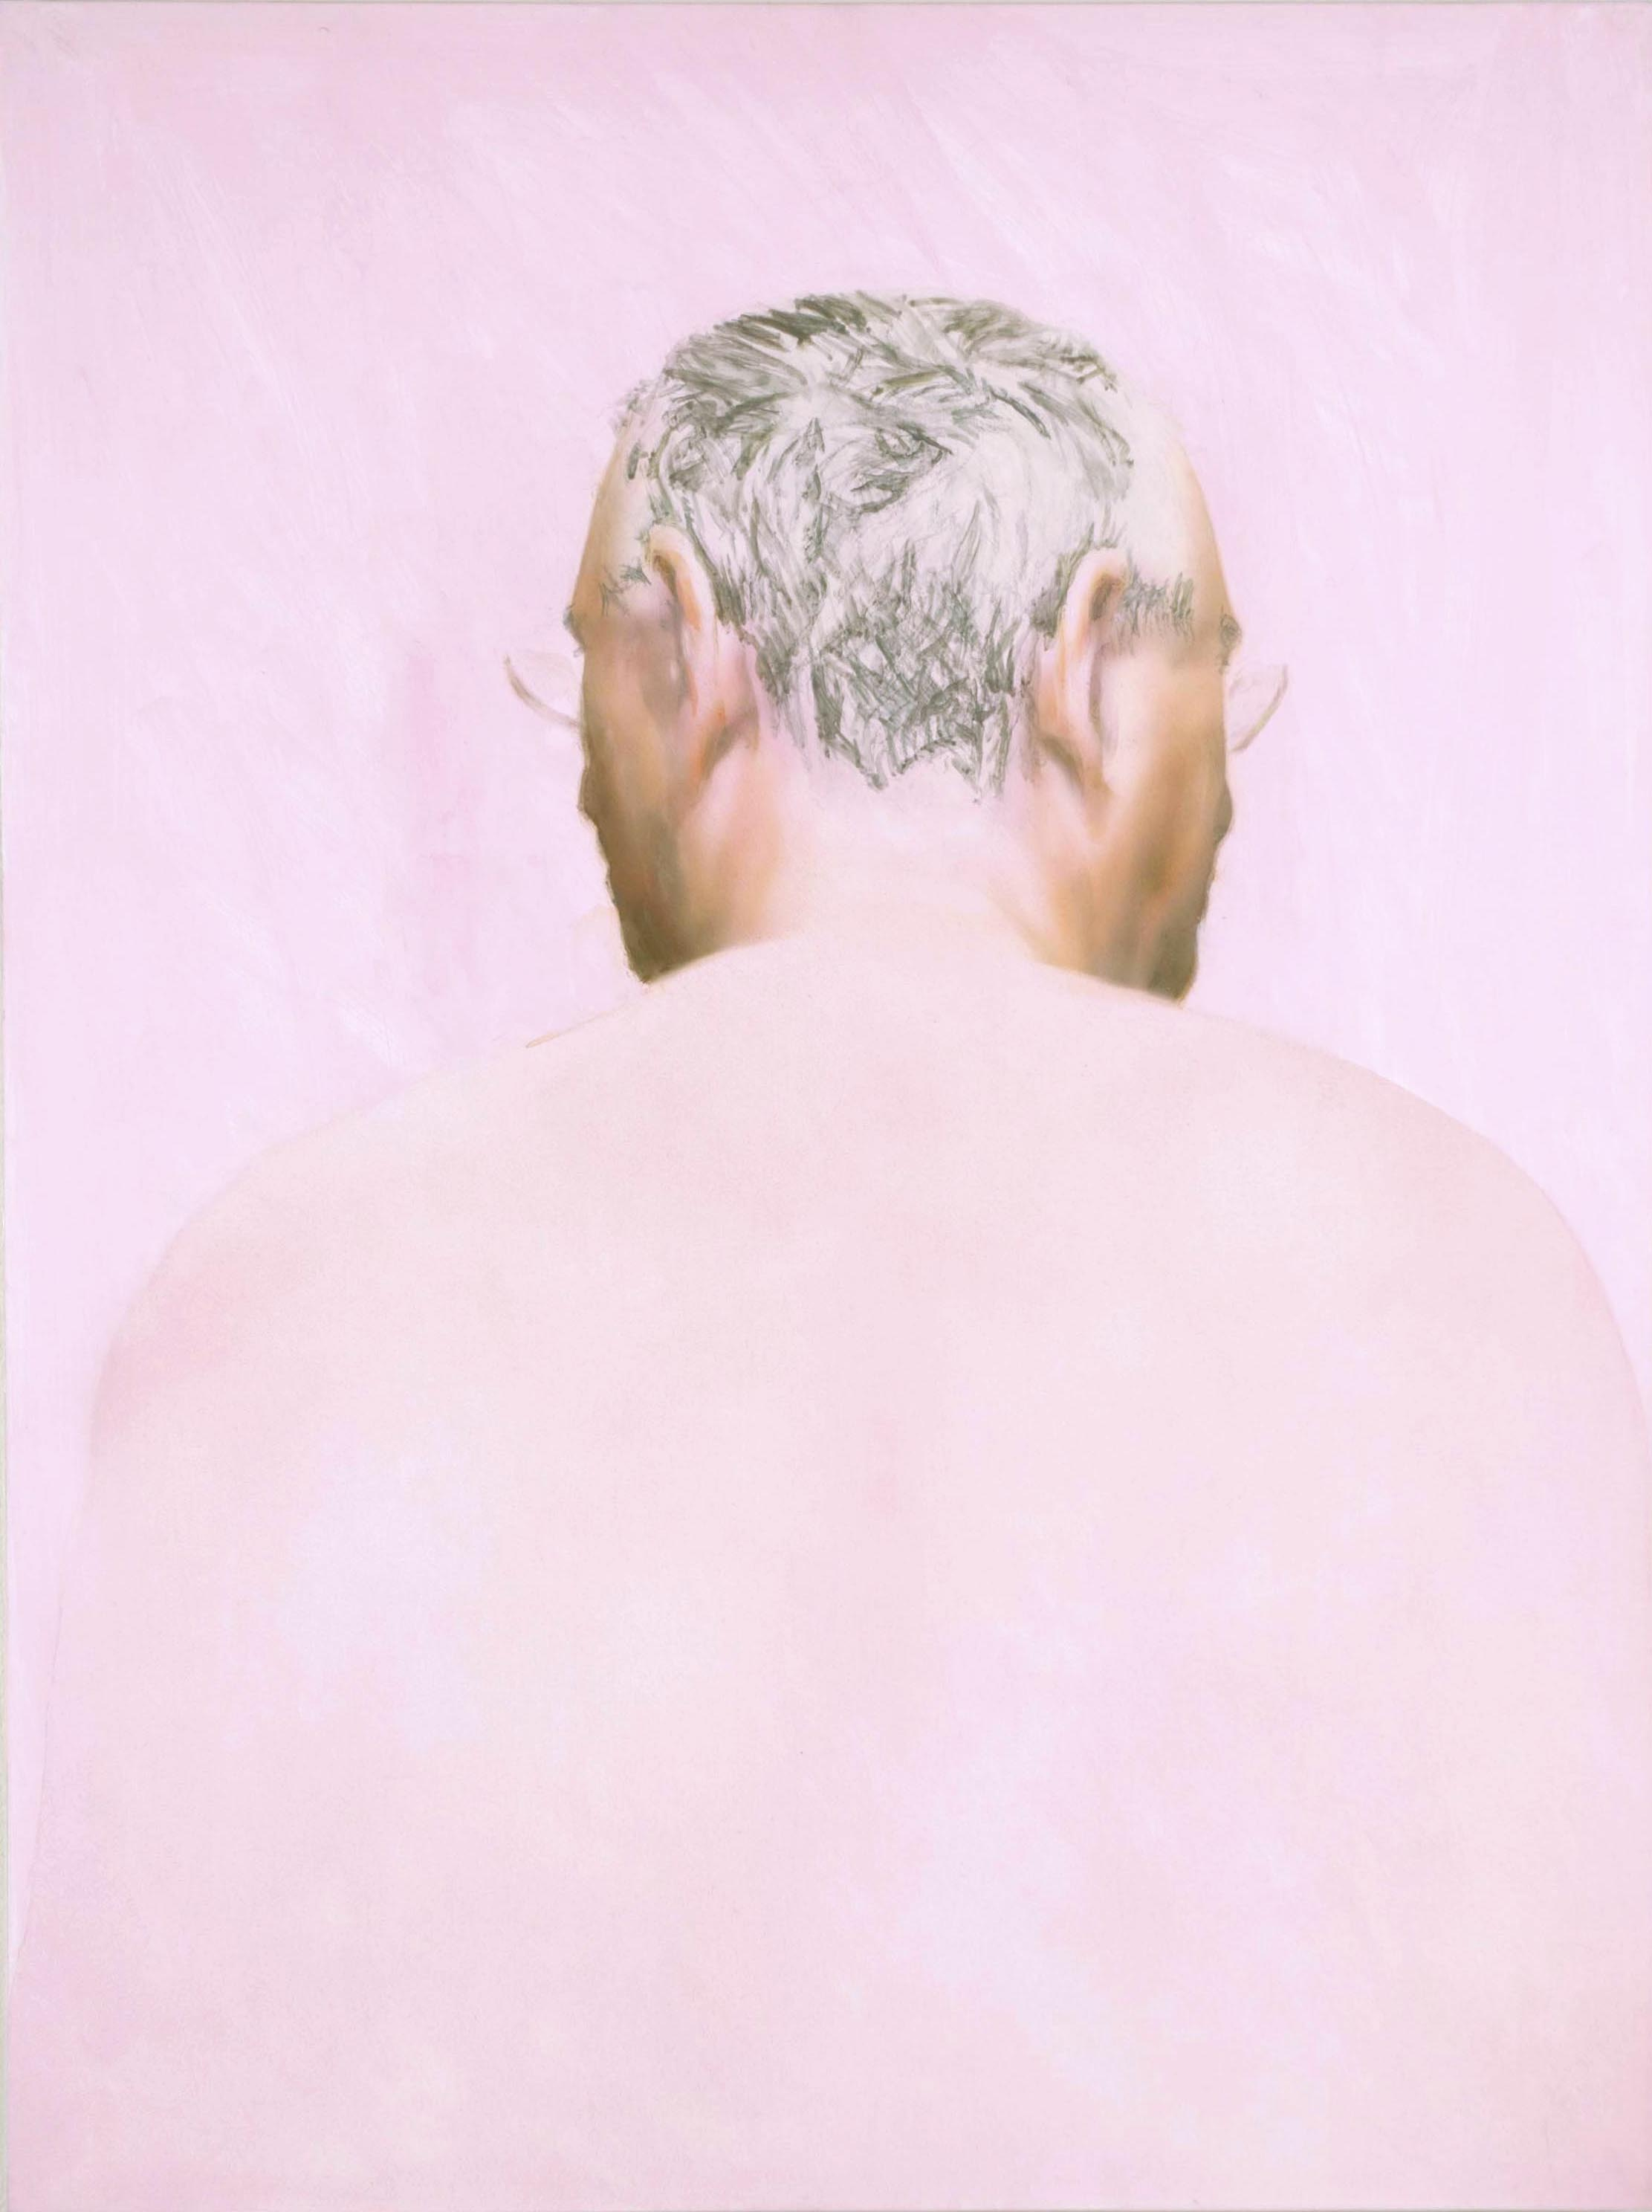 Robert Feintuch  Two-Faced,  2008 Oil and polymer emulsion on honeycomb panel 20h x 15w in.